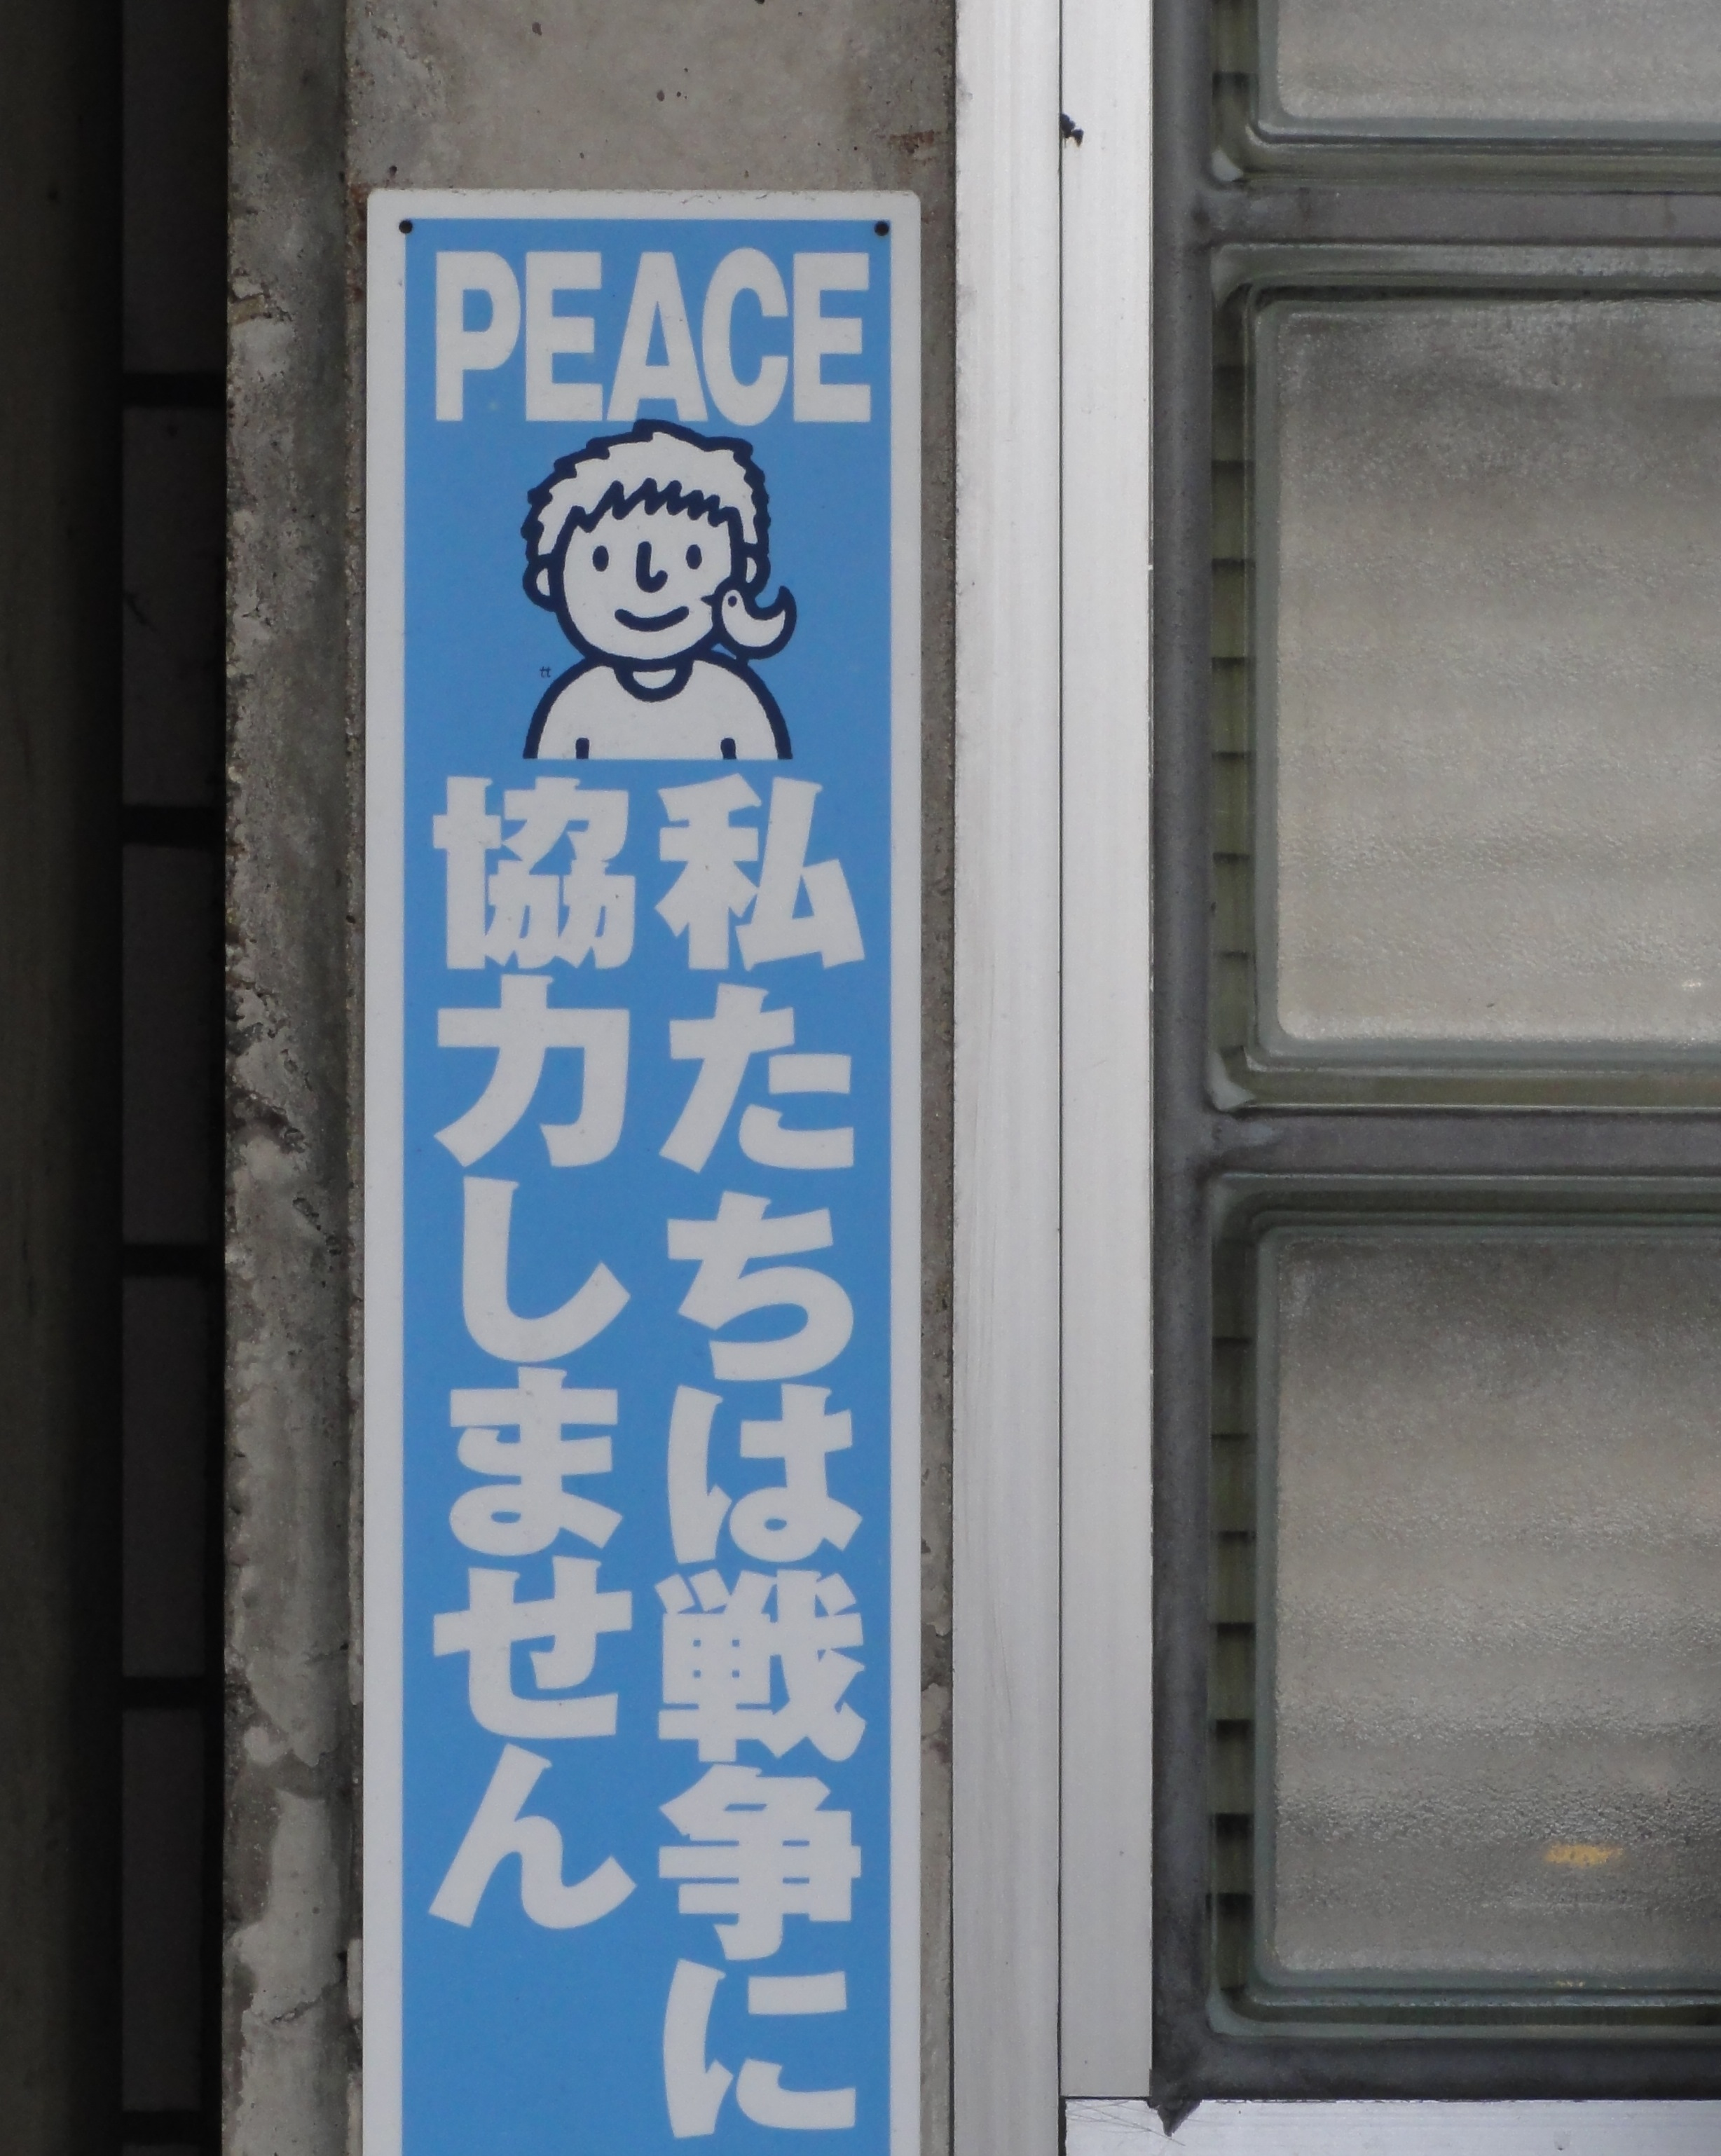 learn-kanji-Japanese-sign-peace-292